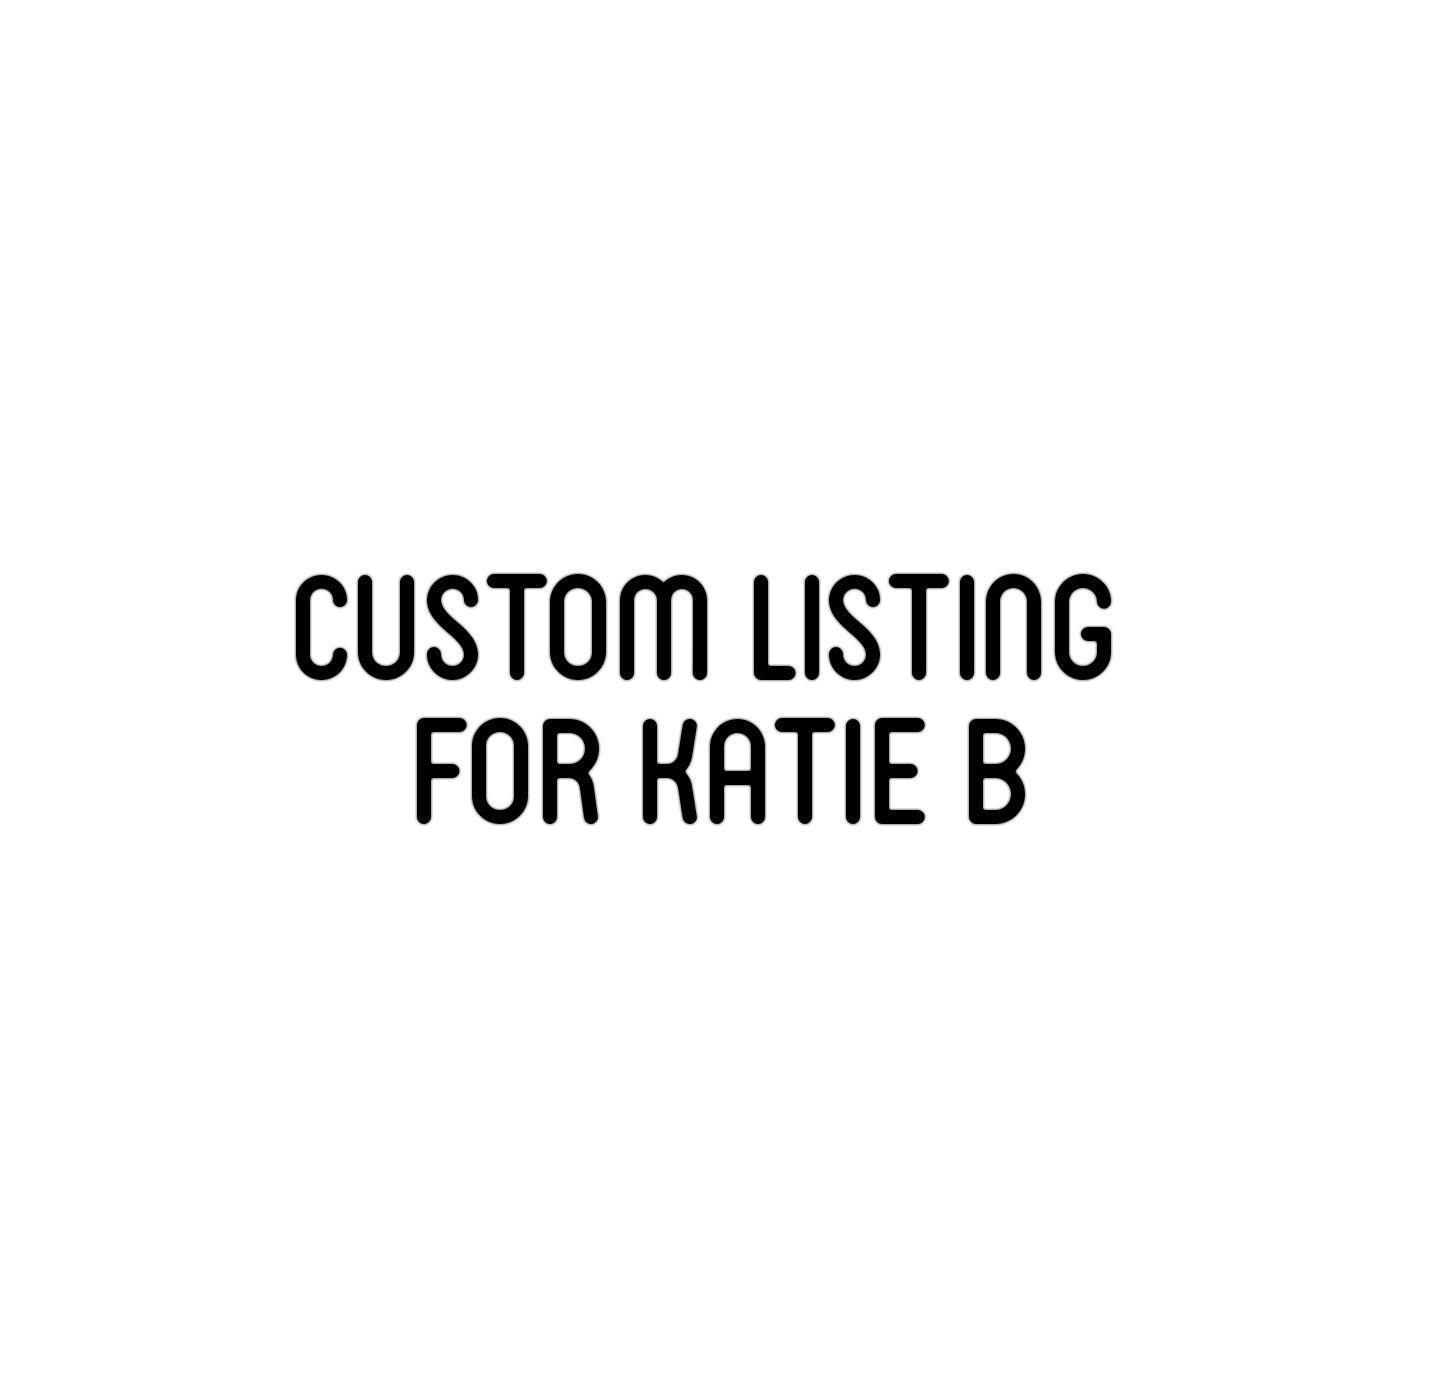 Custom listing for Katie B - Hello Pickle!